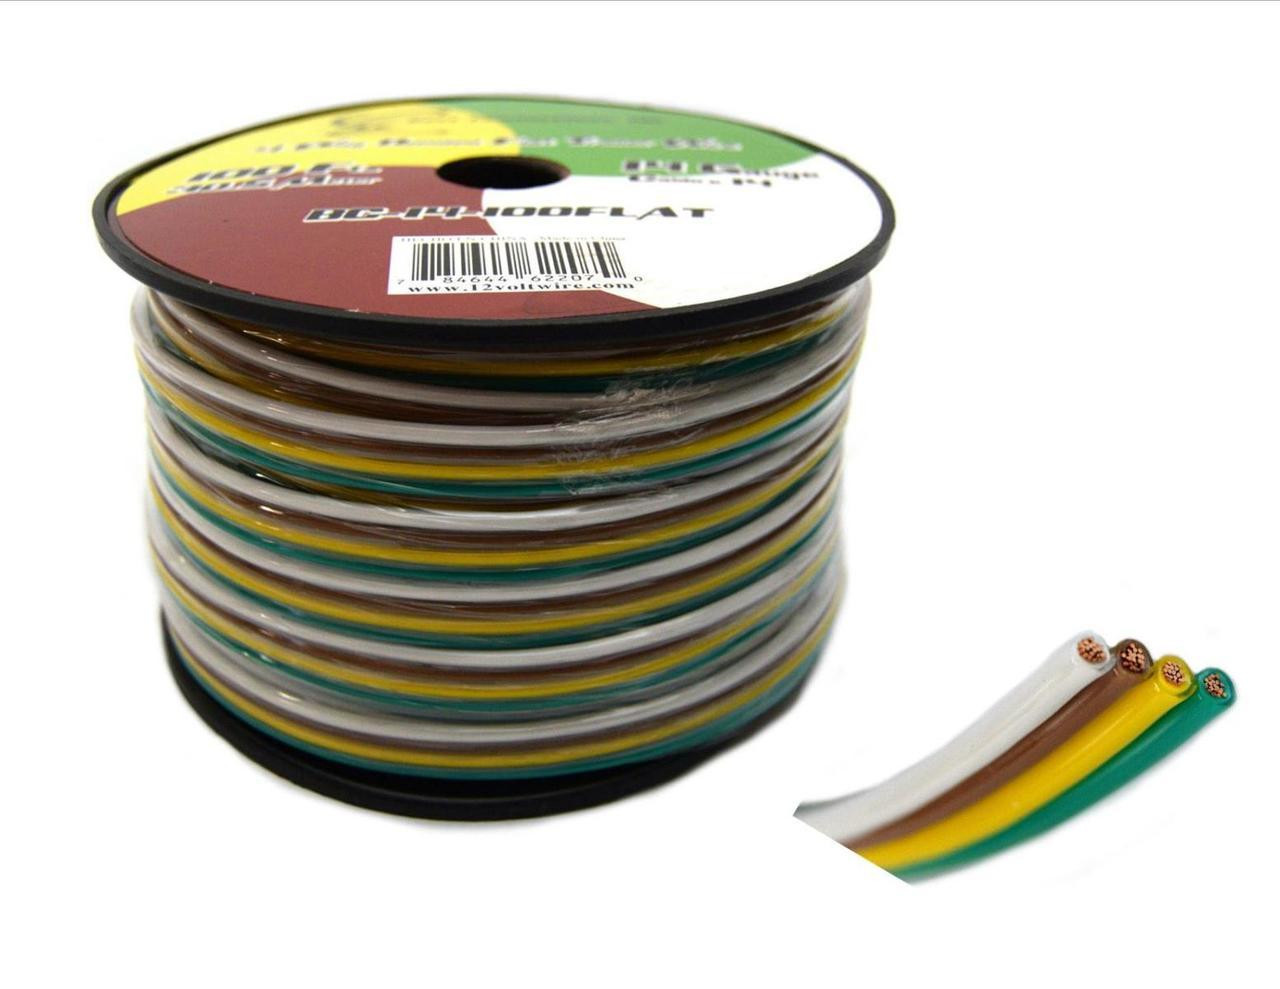 medium resolution of flat trailer light cable wiring harness 100 feet 14 awg 4 wire cca